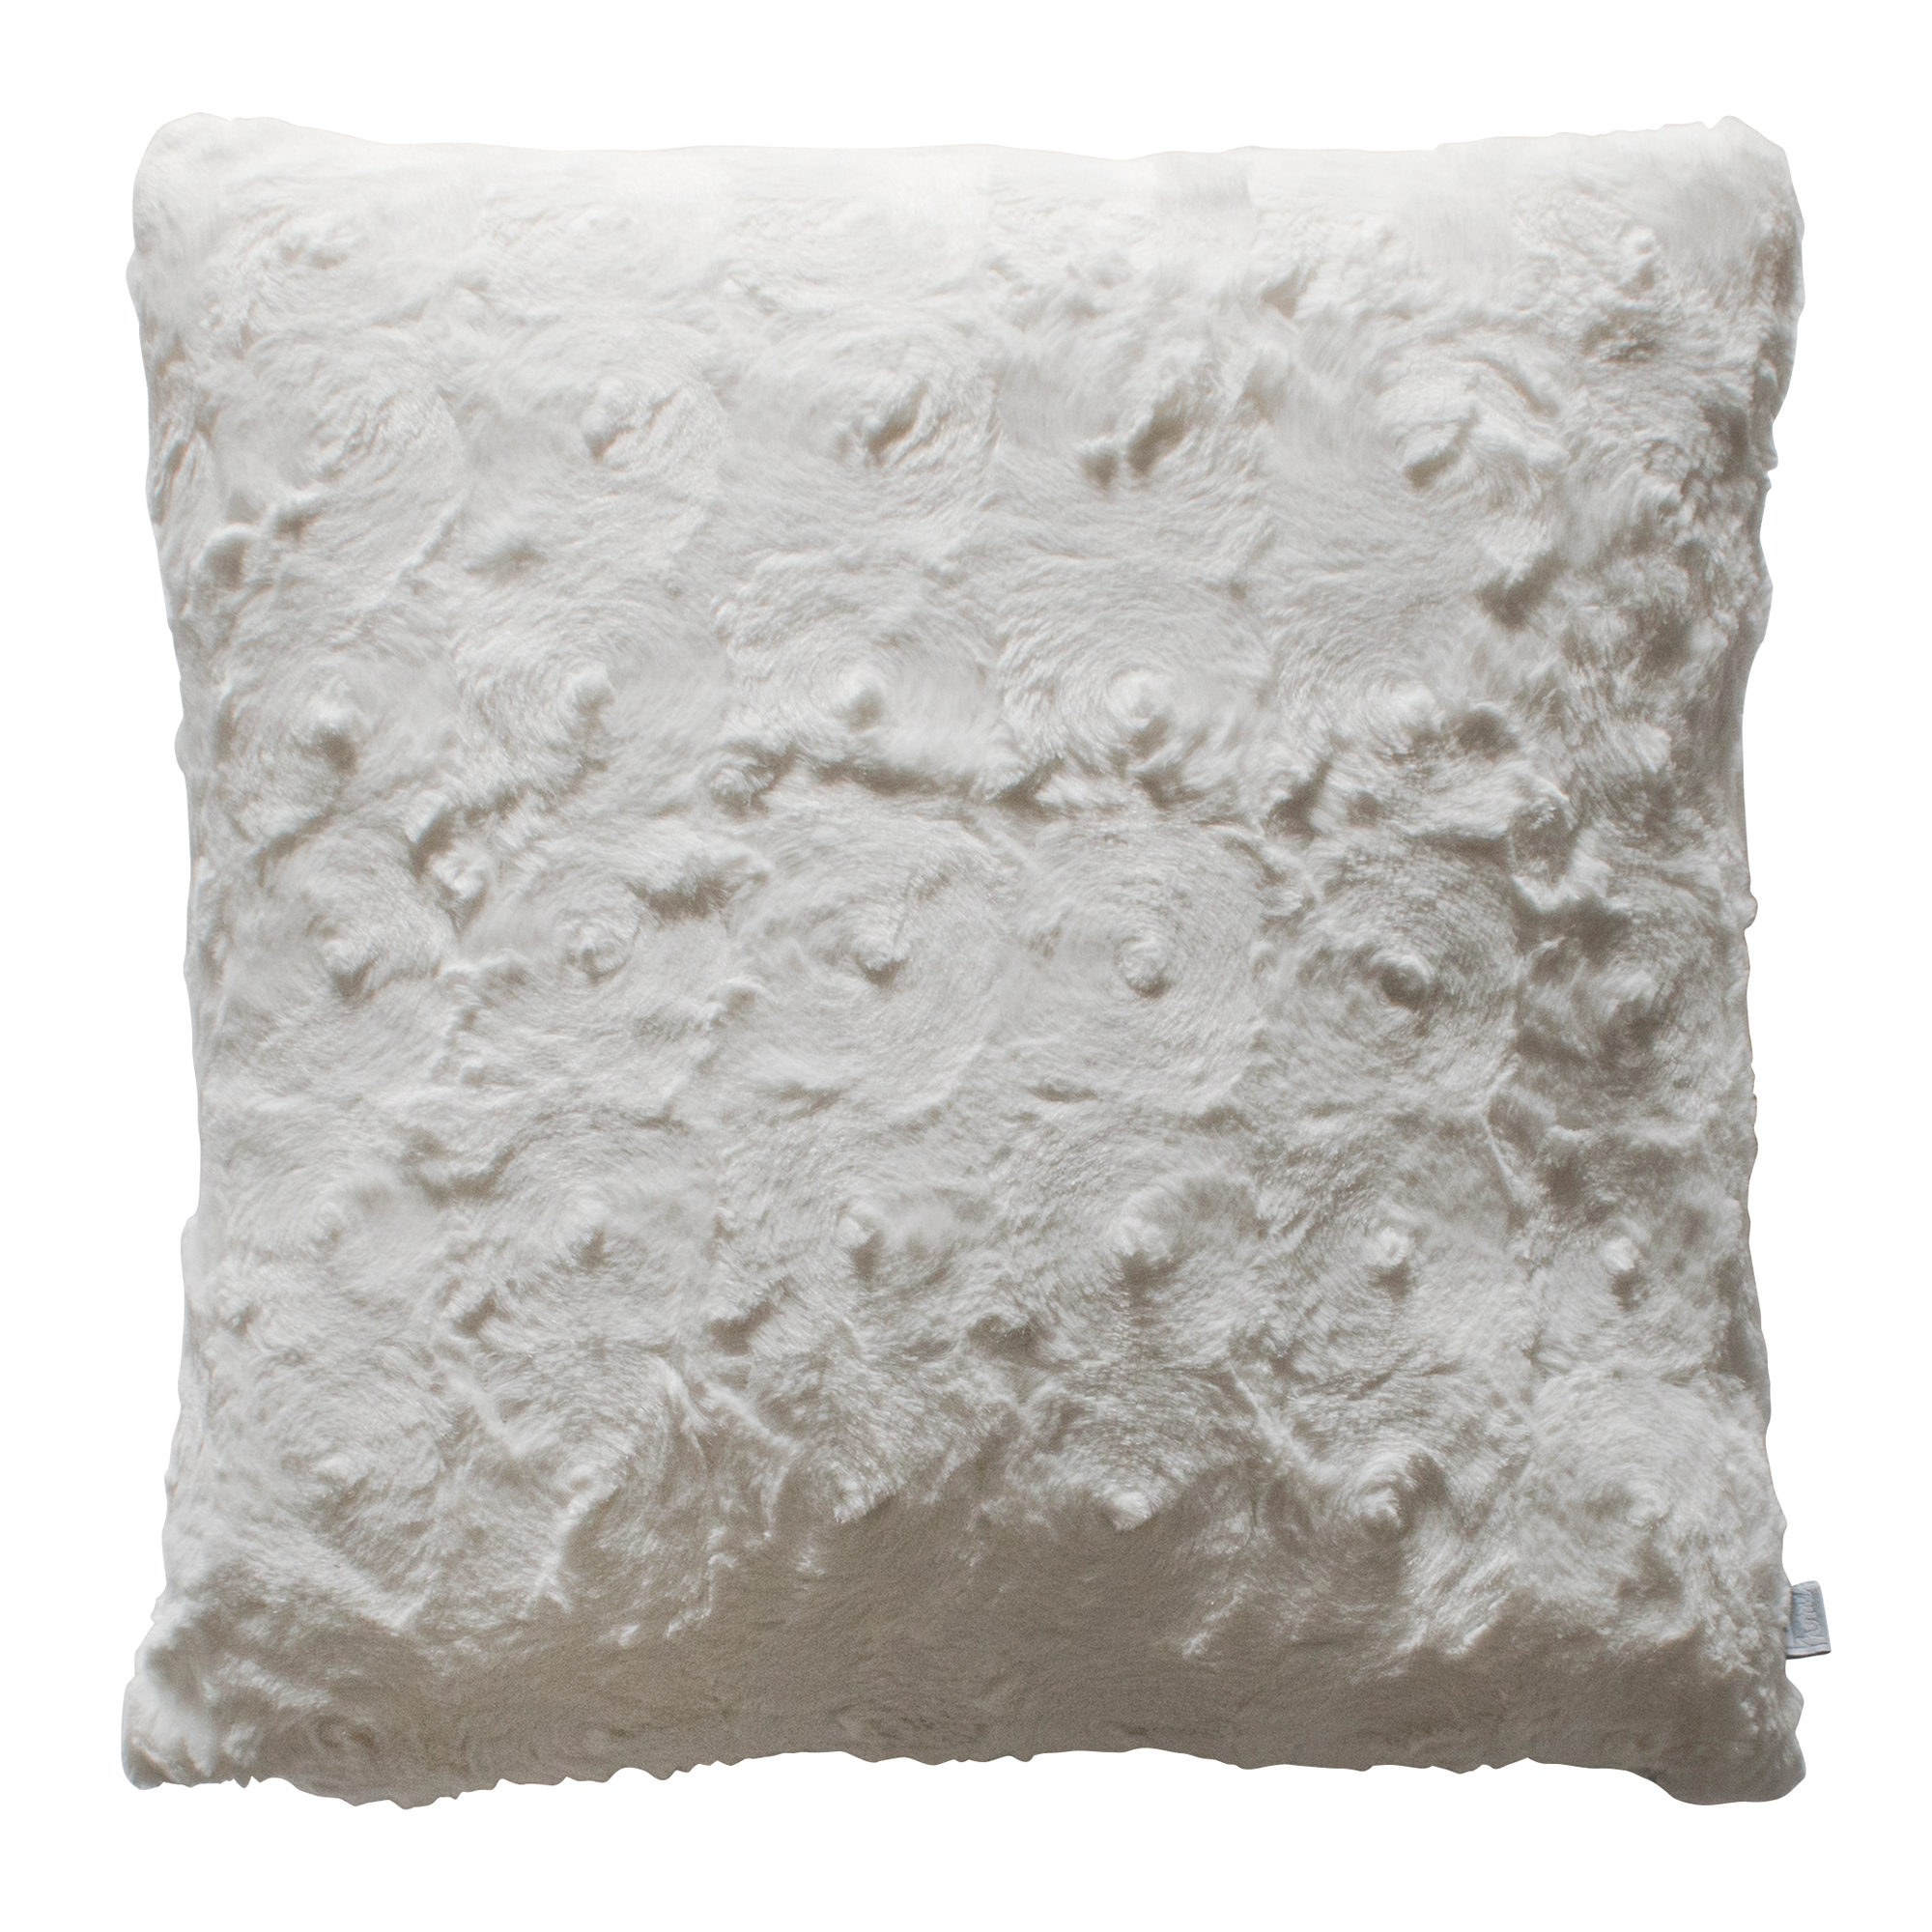 faux fur irresistibly a gray luxury of to lends pillow our at your look space an pin